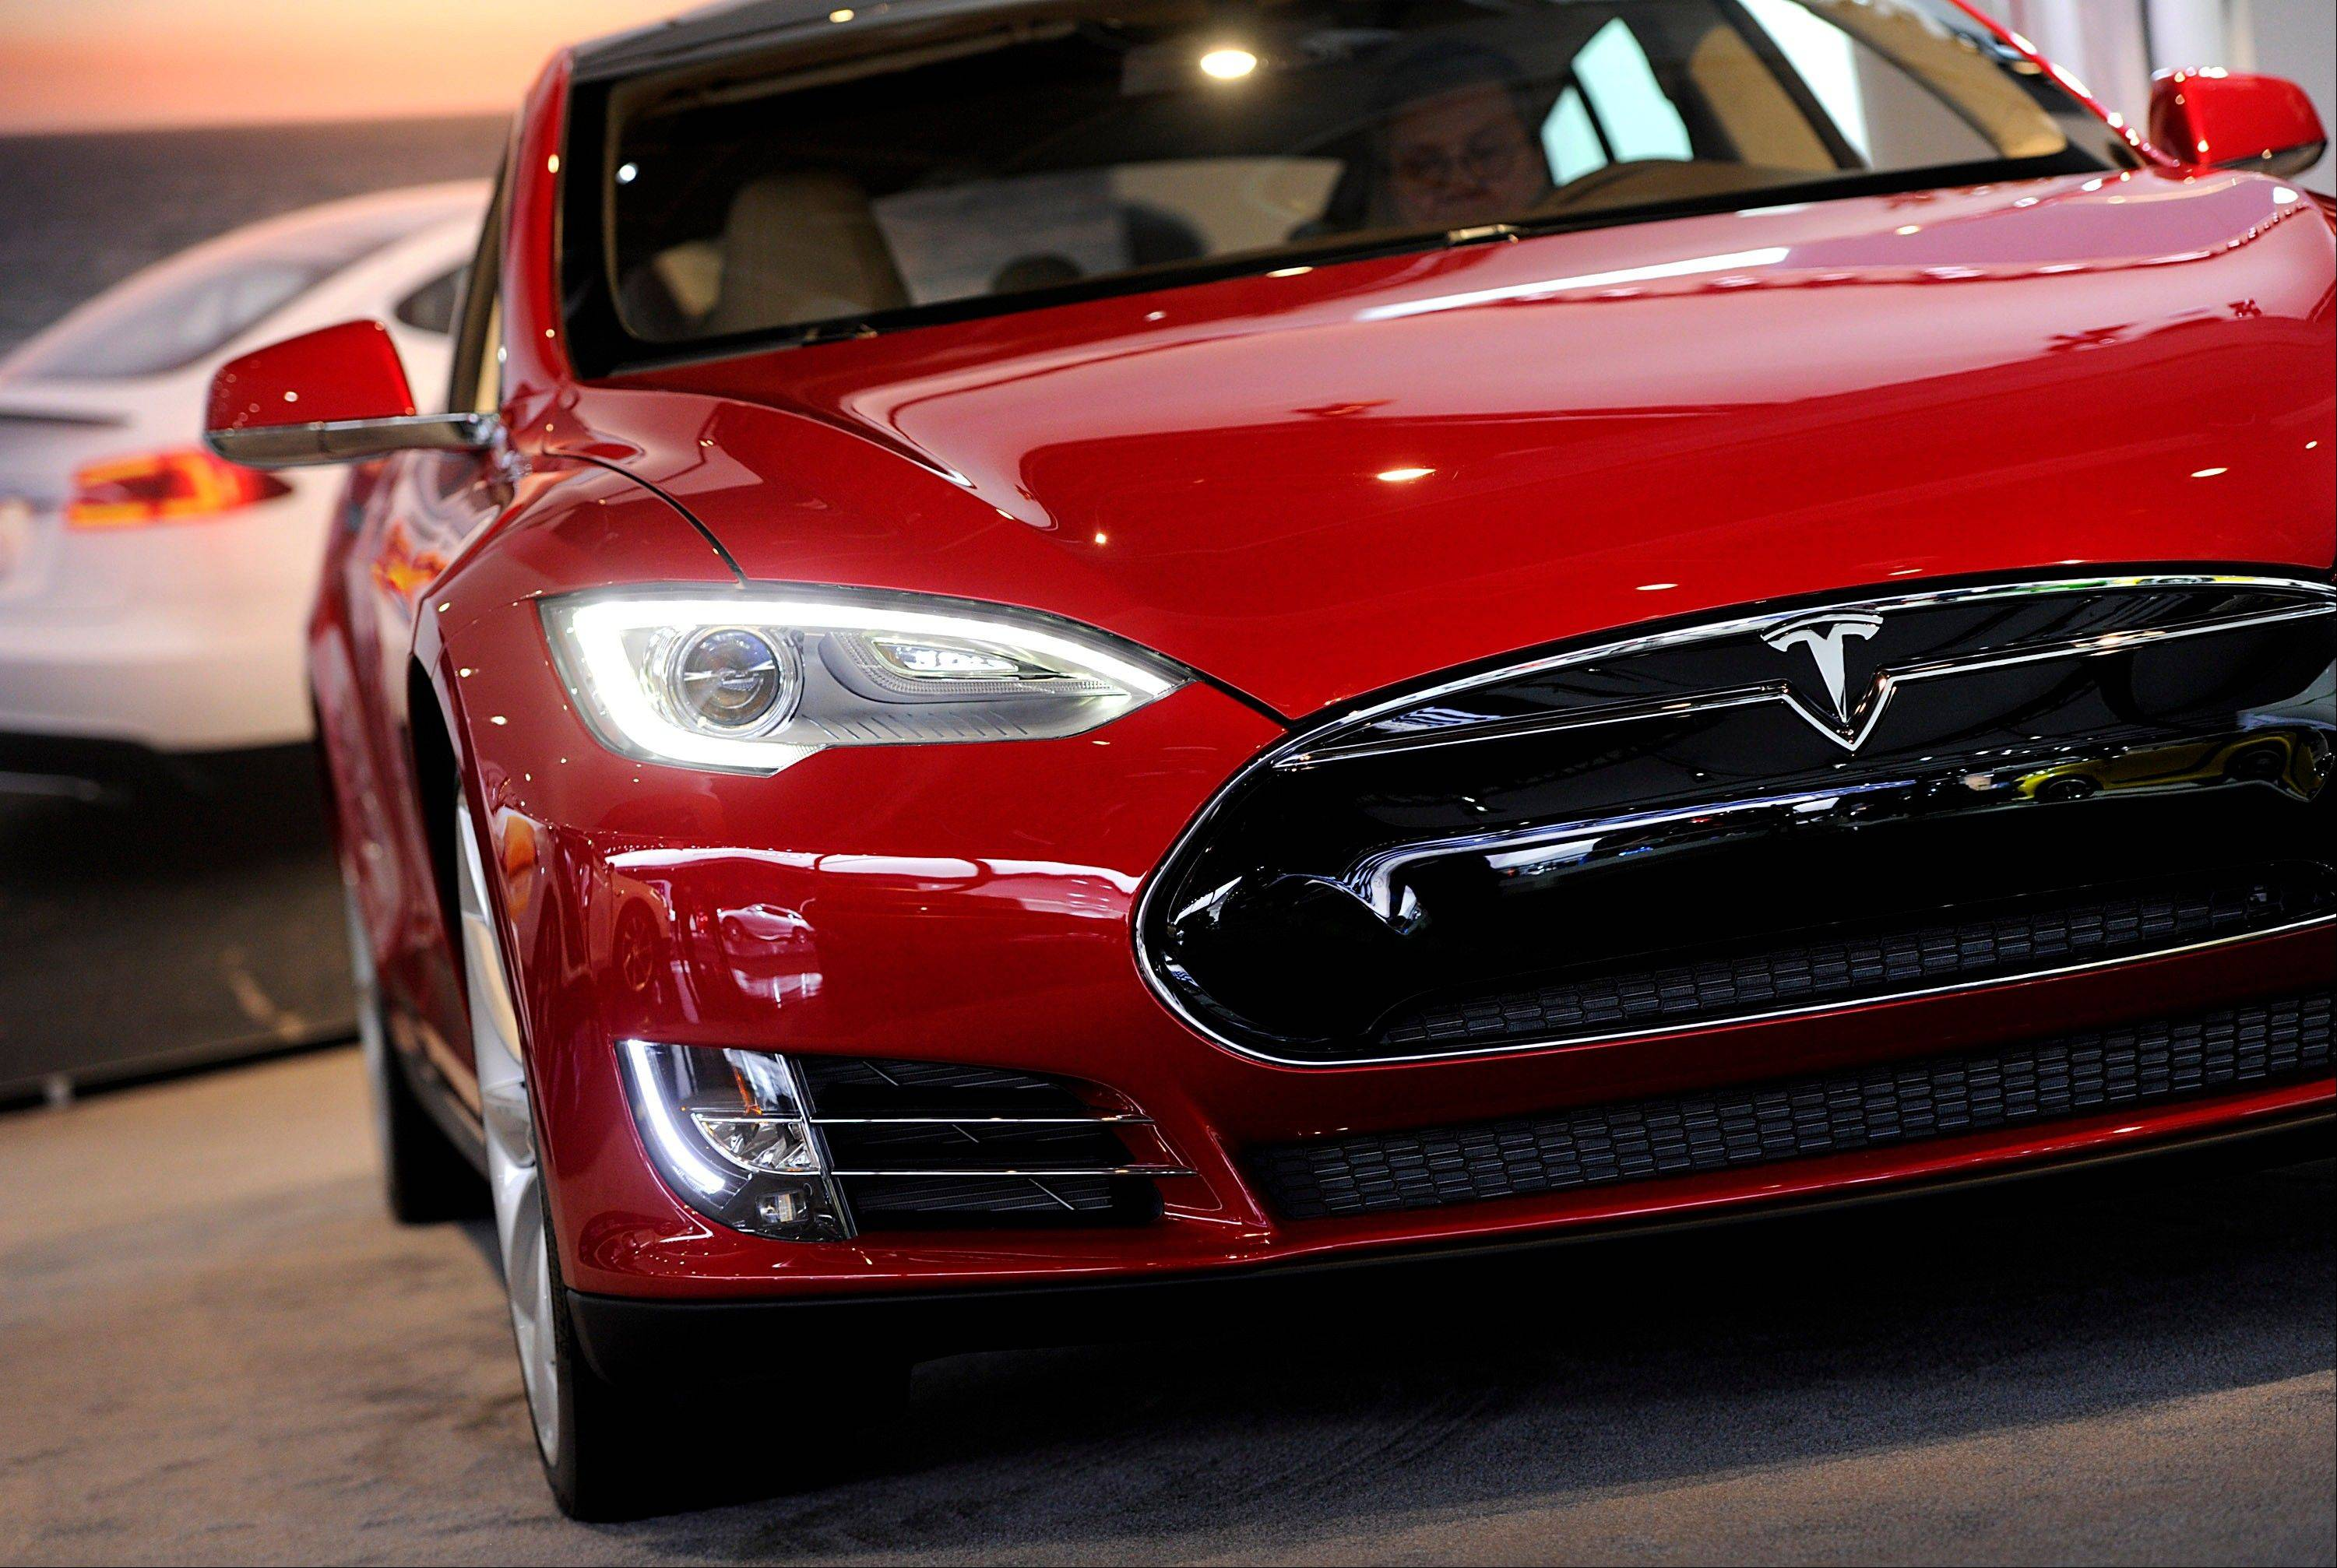 A Tesla Motors Inc. vehicle is displayed during the 2013 North American International Auto Show (NAIAS) in Detroit, Michigan, U.S., on Tuesday, Jan. 15, 2013. The Detroit auto show runs through Jan. 27 and will display over 500 vehicles, representing the most innovative designs in the world.